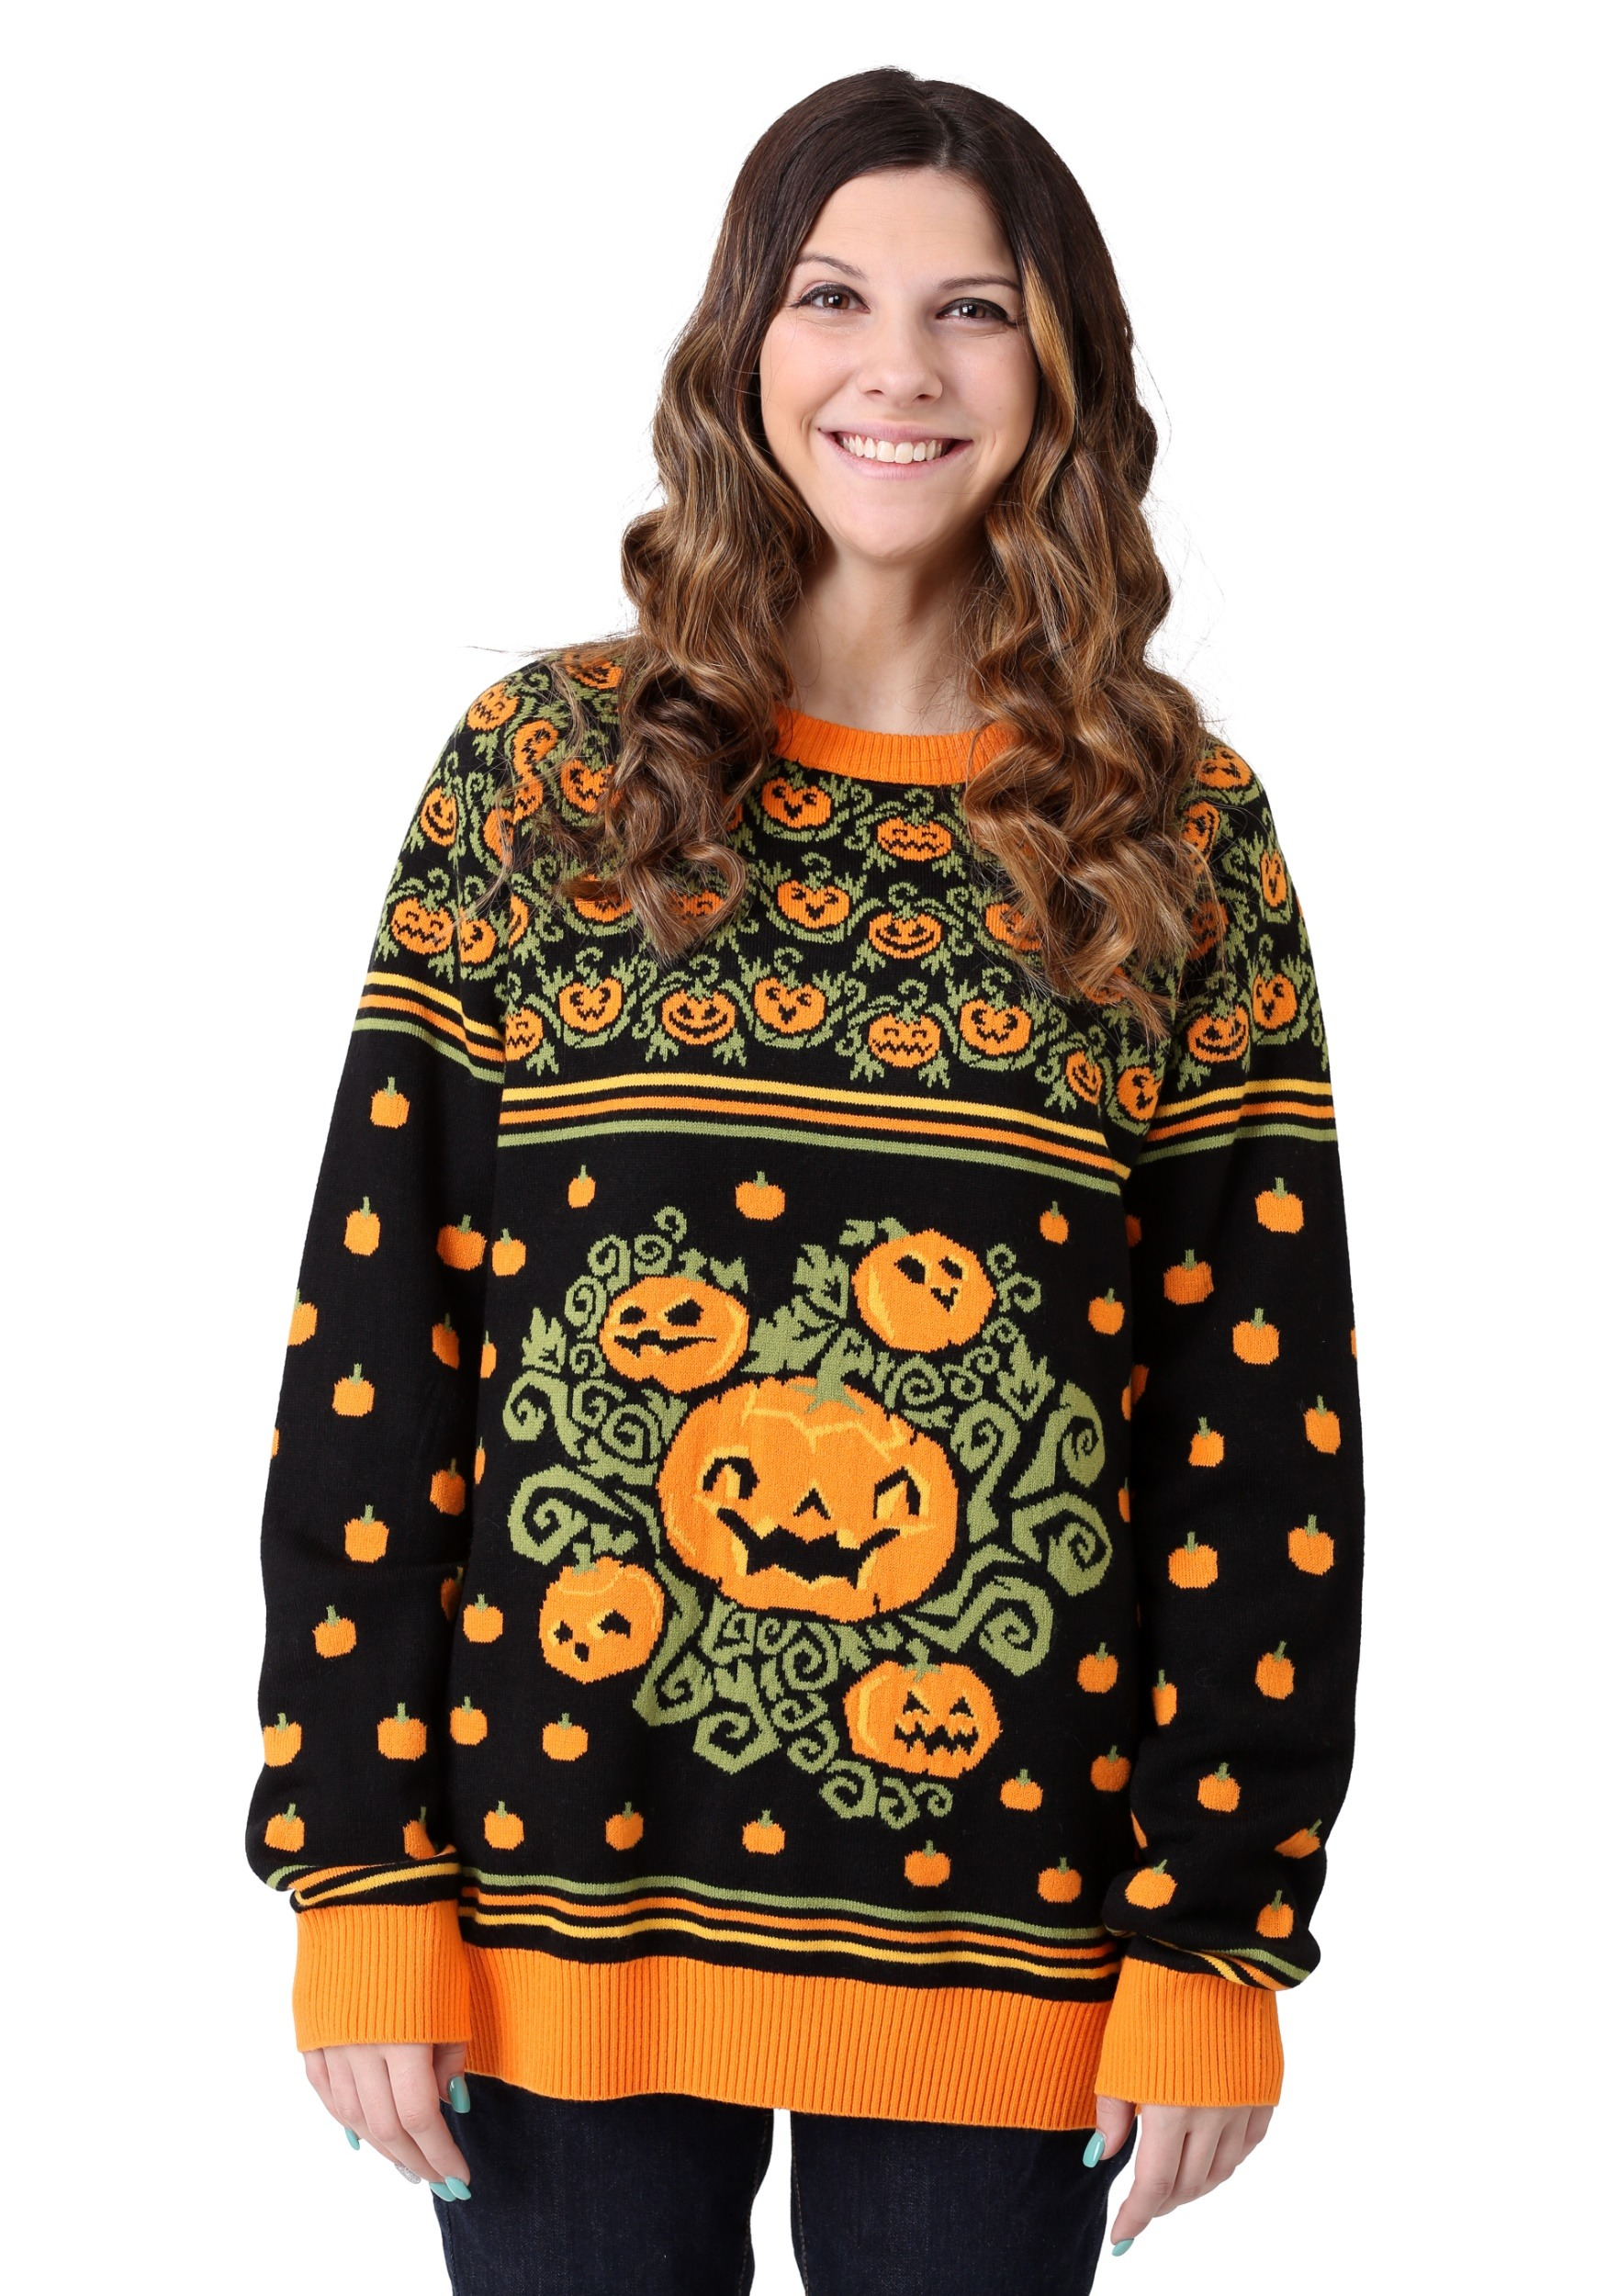 Pumpkin Patch Ugly Halloween Sweater for Adults | Exclusive